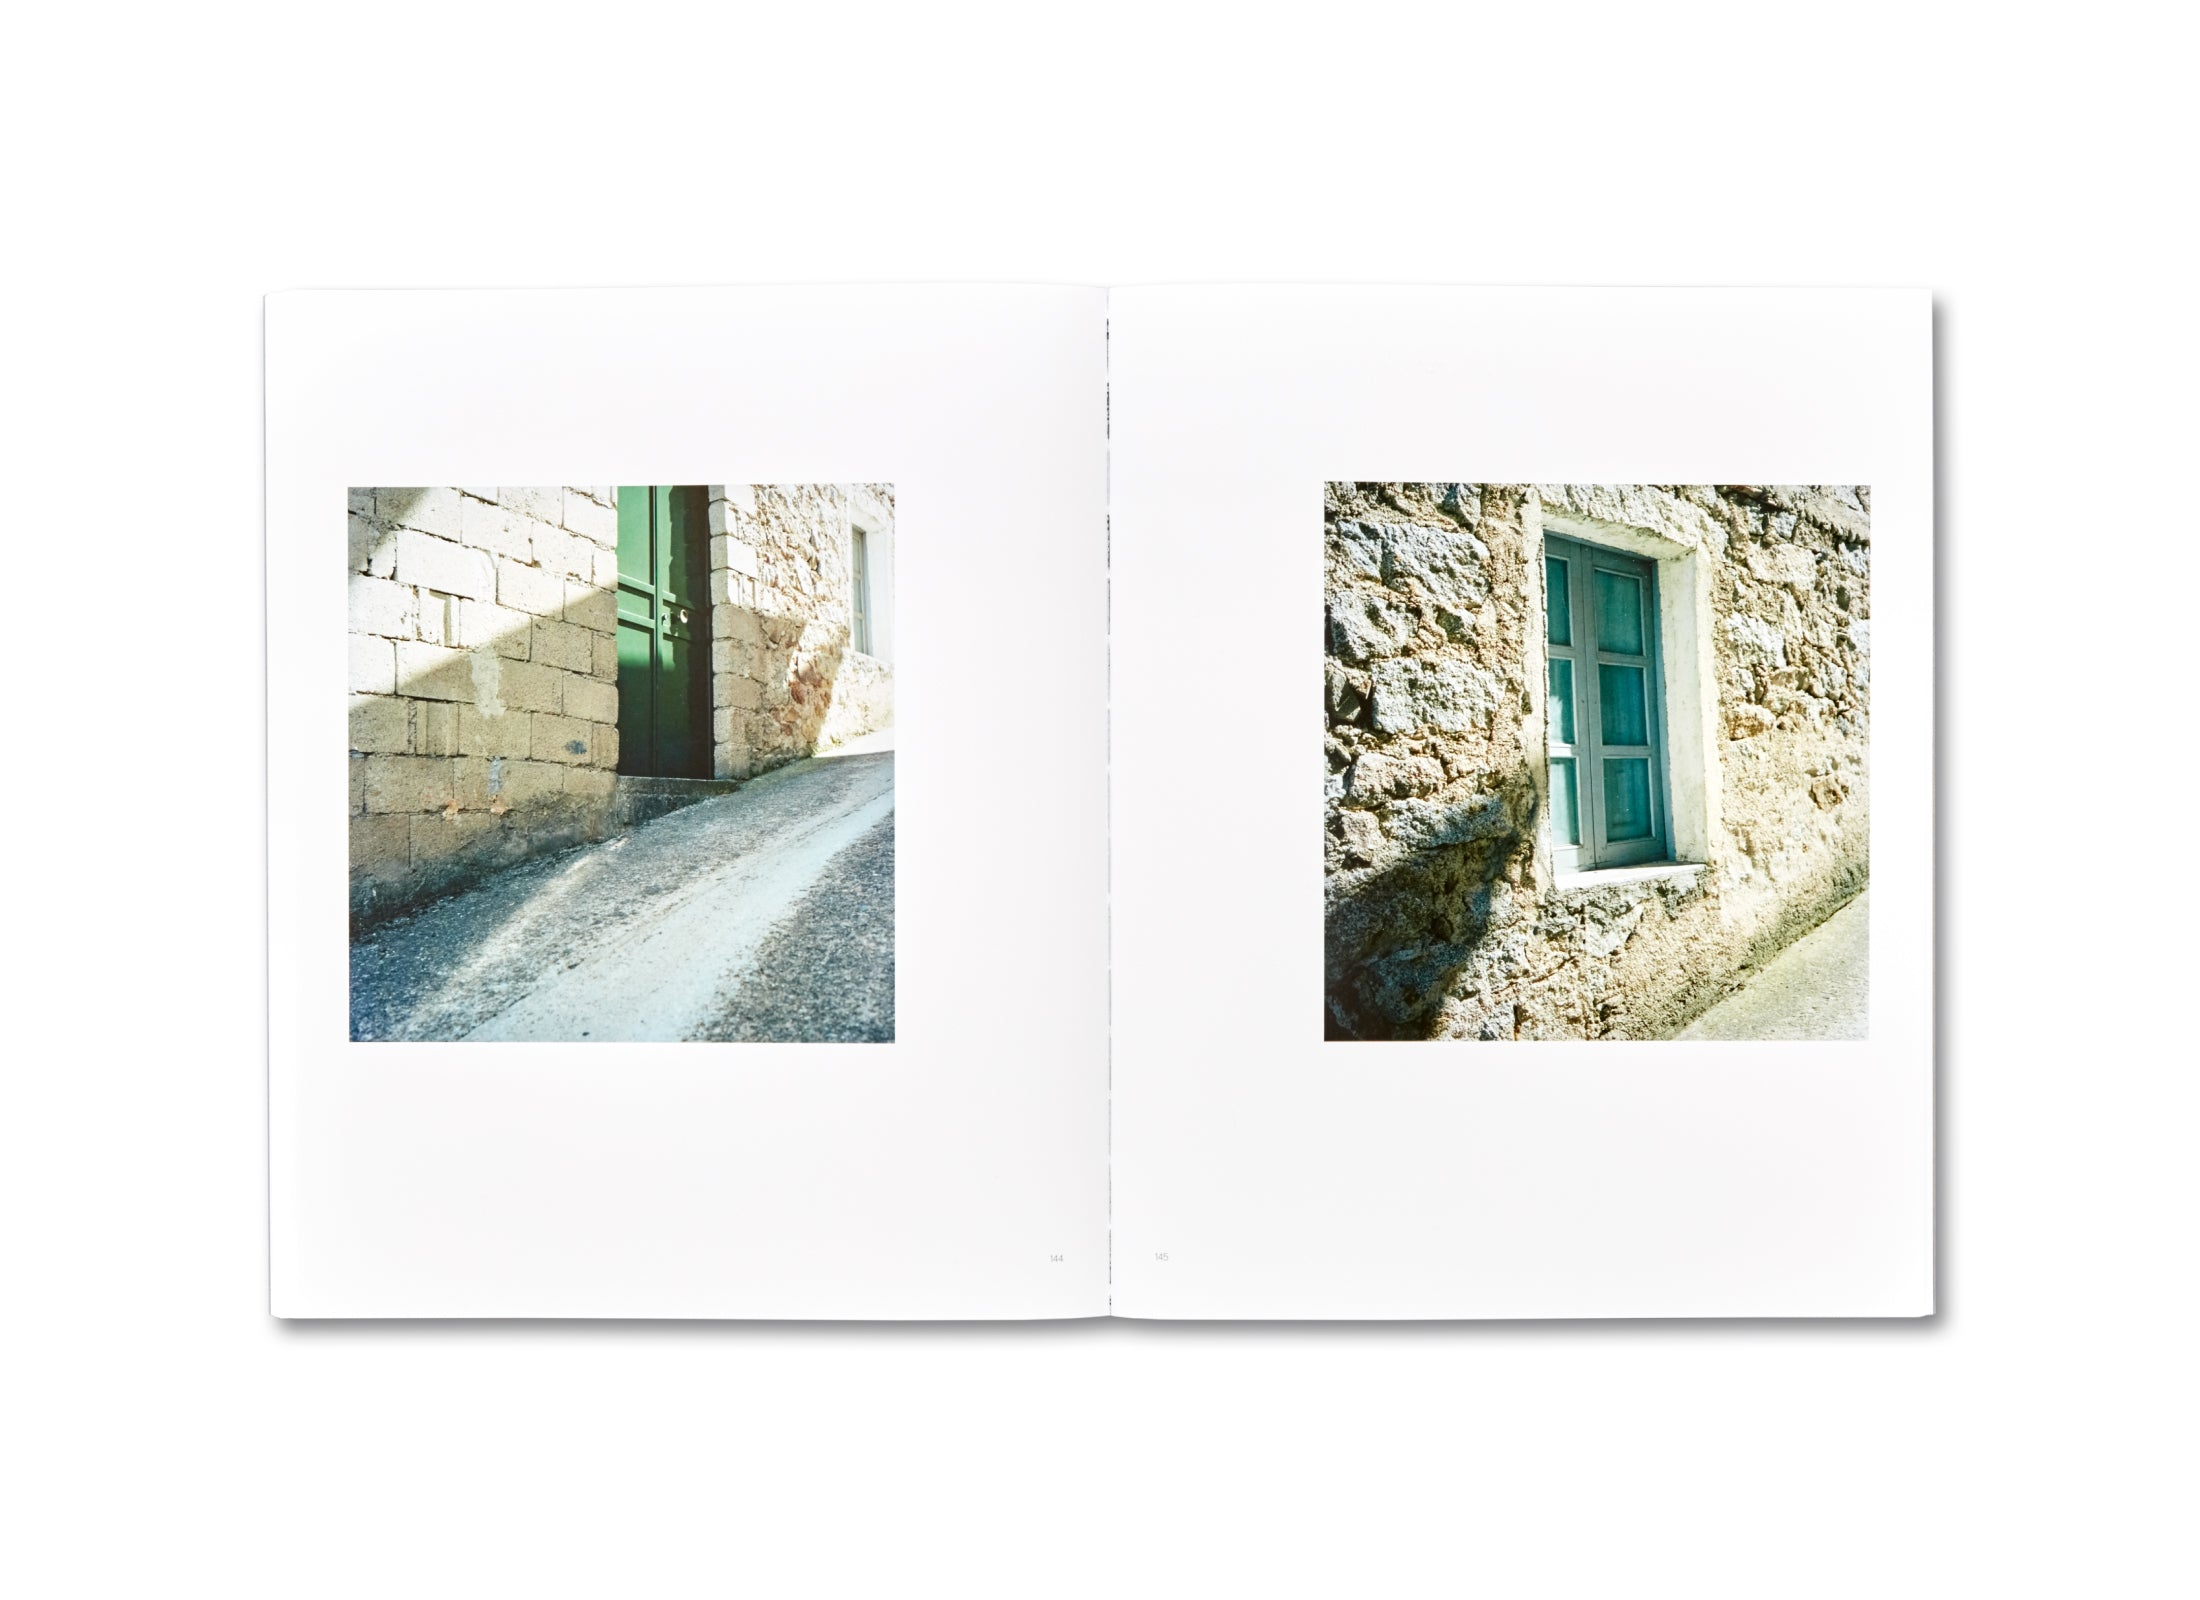 IN SARDEGNA by Guido Guidi [SIGNED]